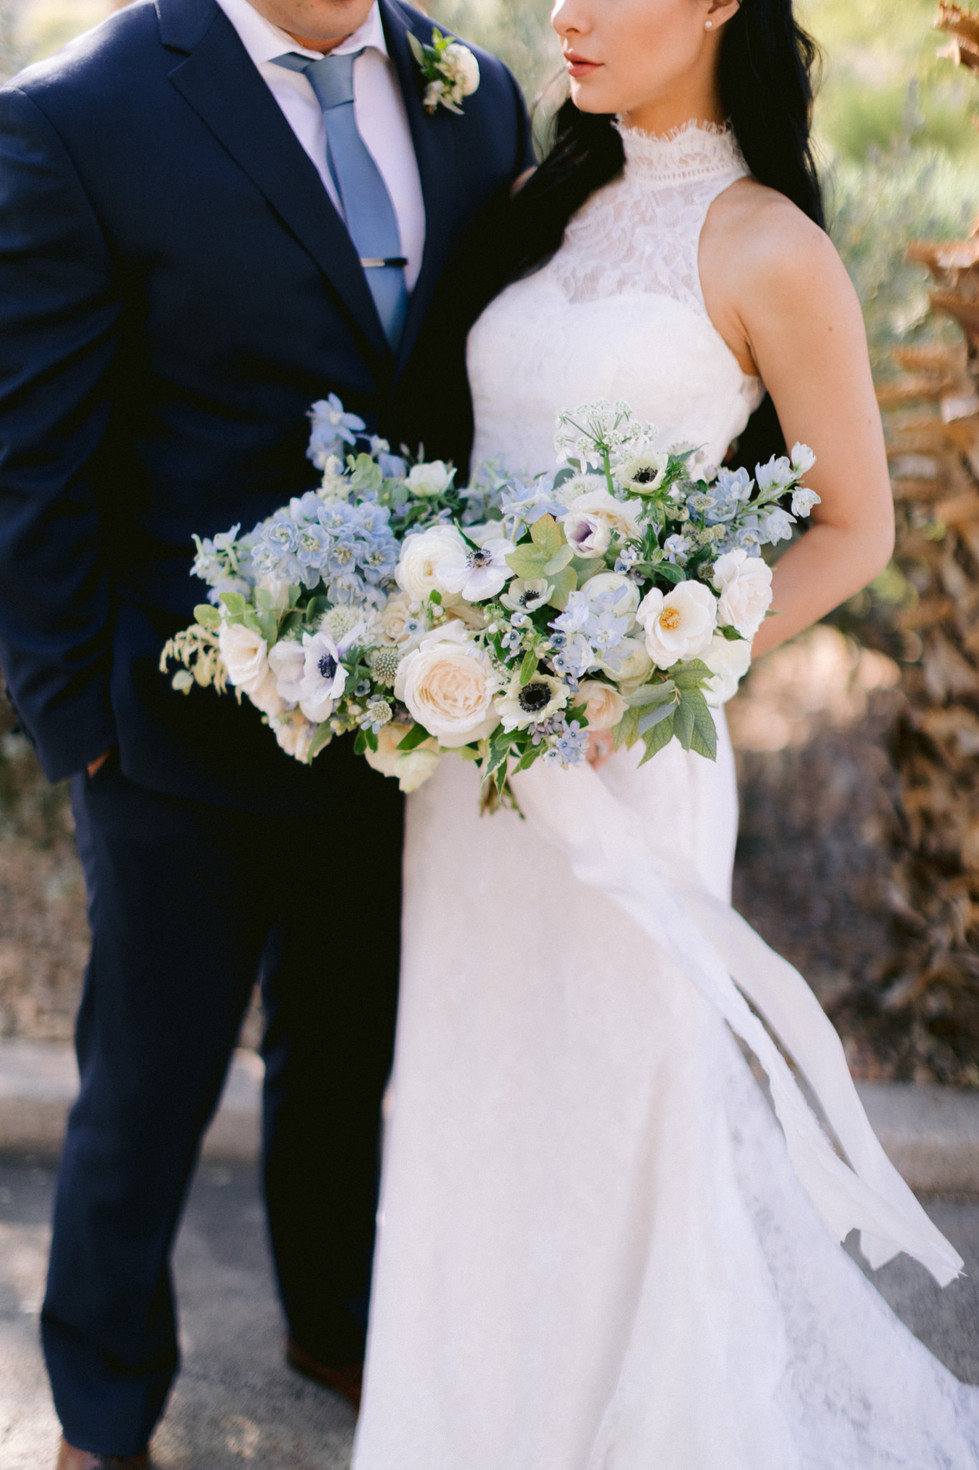 Dusty blue and ivory wedding bouquet with garden roses, anemones, tweedia, and delphinium. Photo: Susie and Will